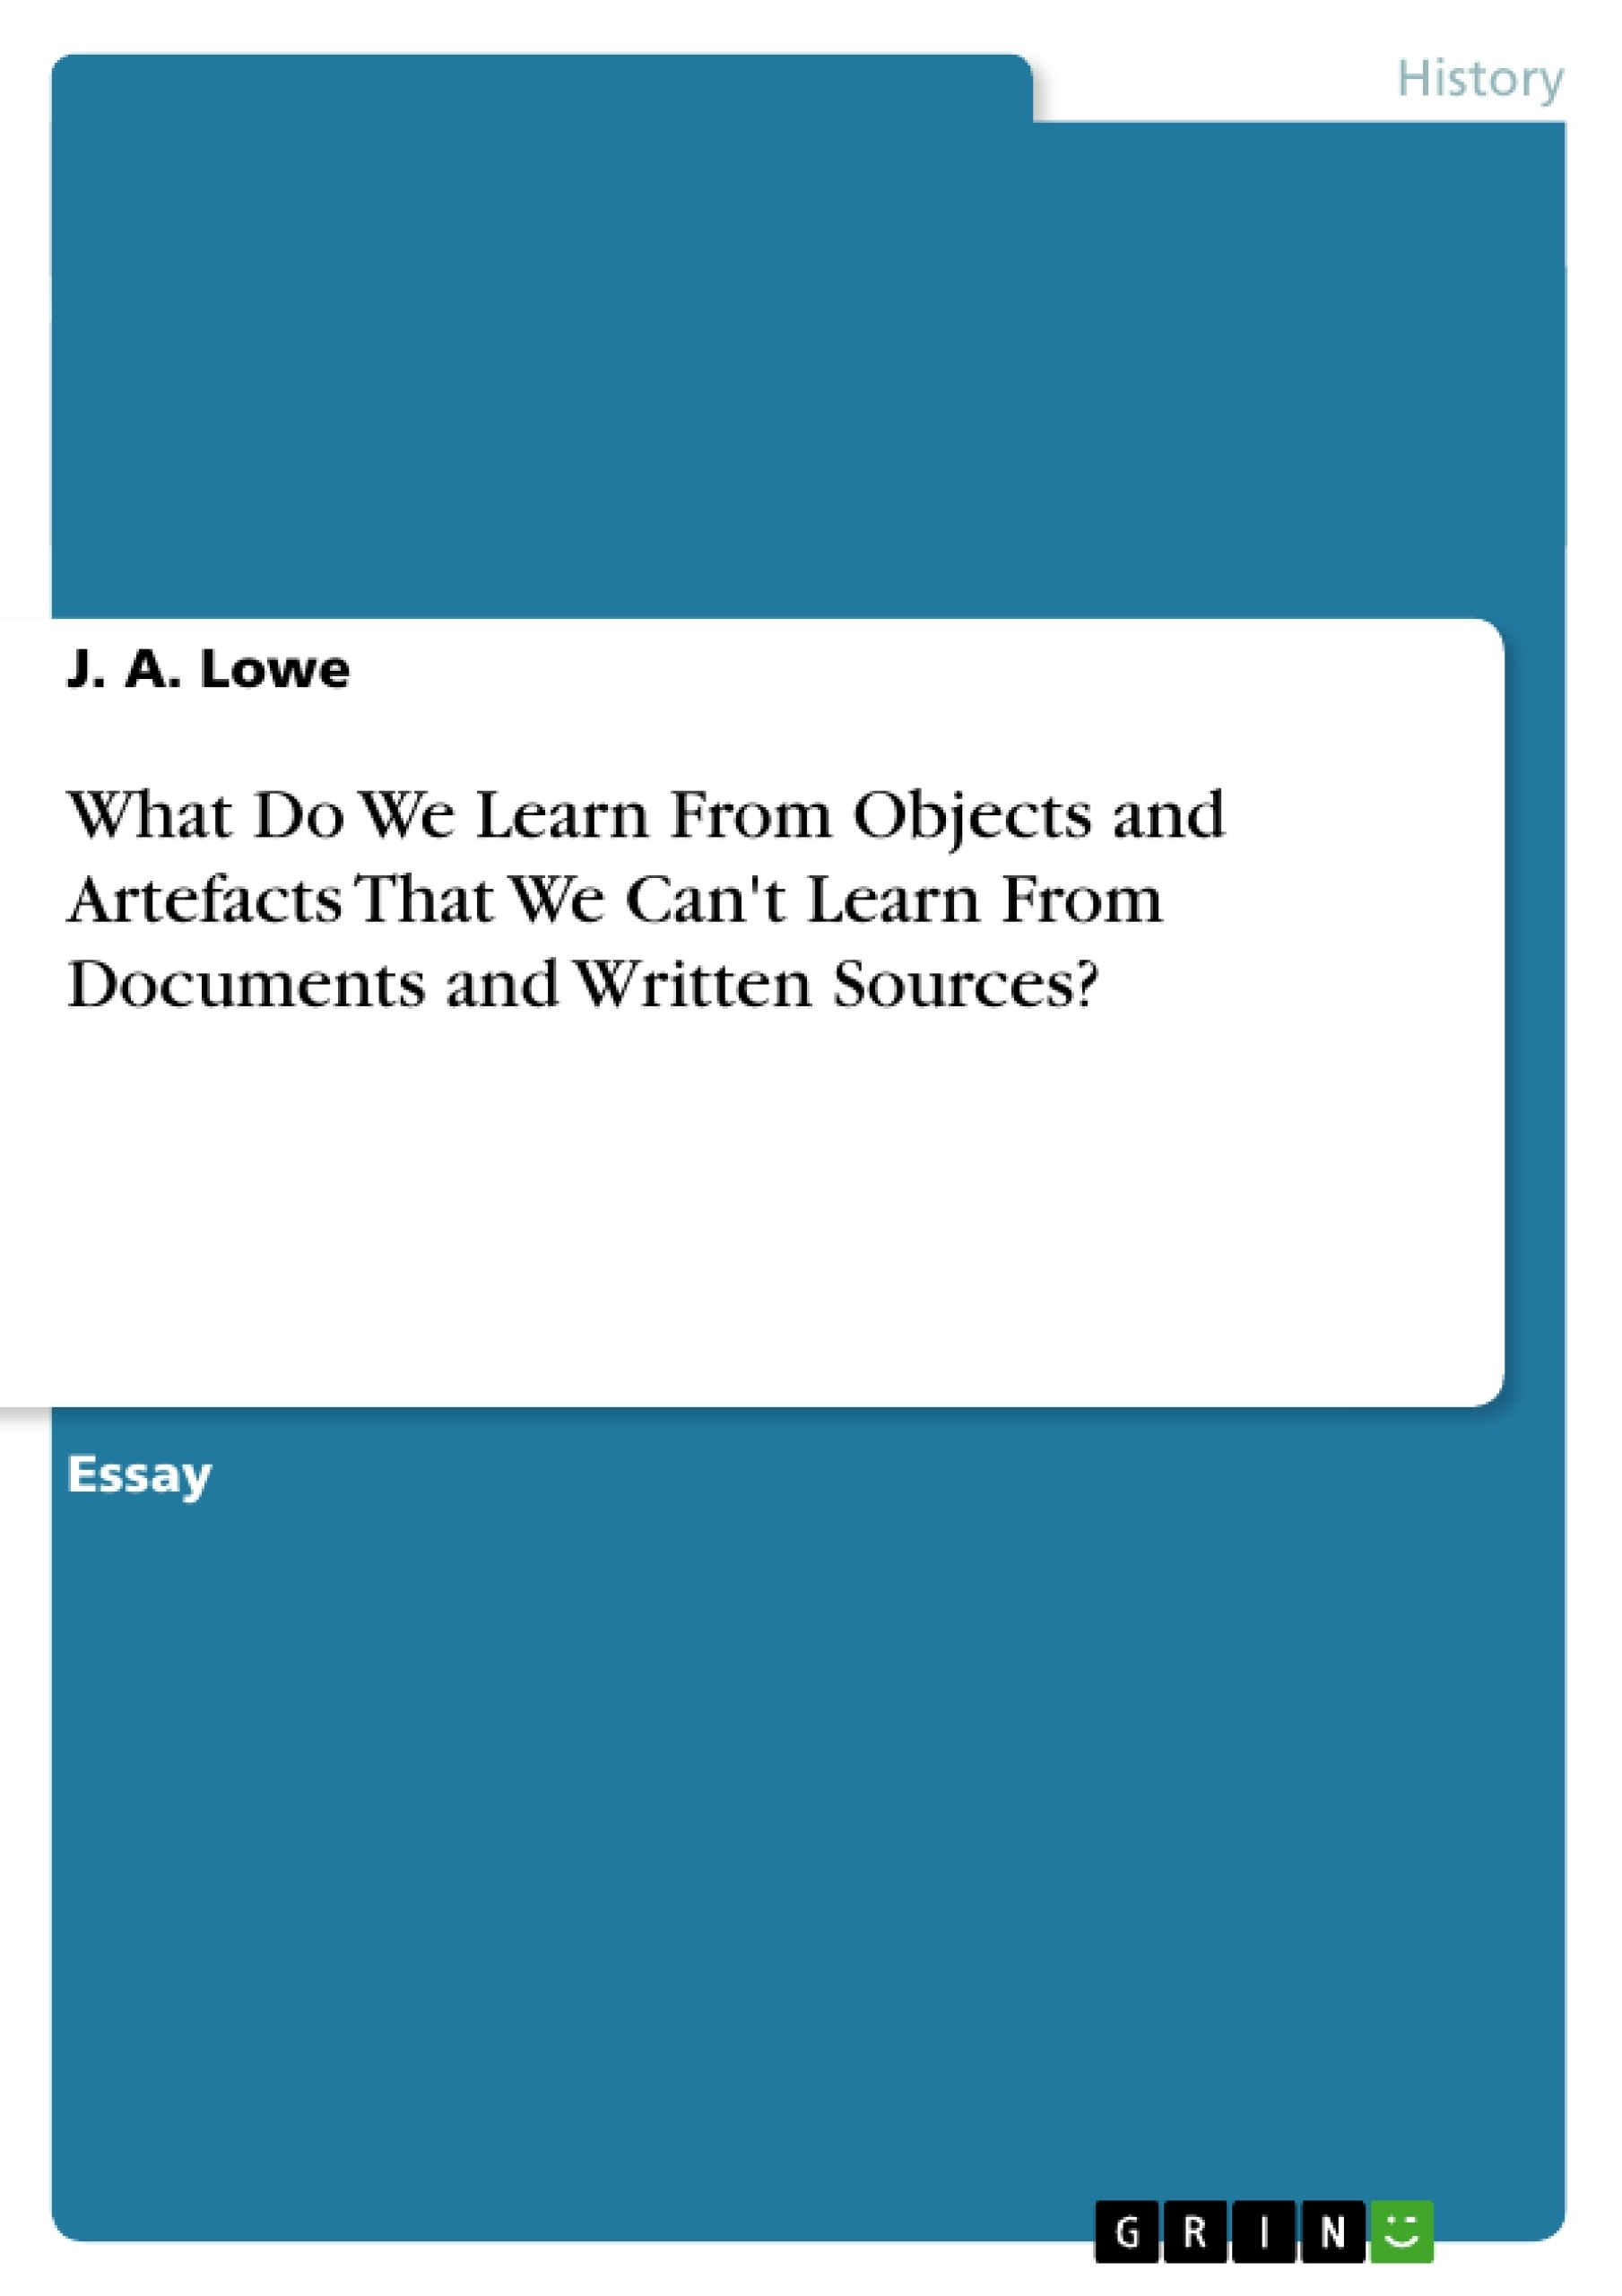 Title: What Do We Learn From Objects and Artefacts That We Can't Learn From Documents and Written Sources?